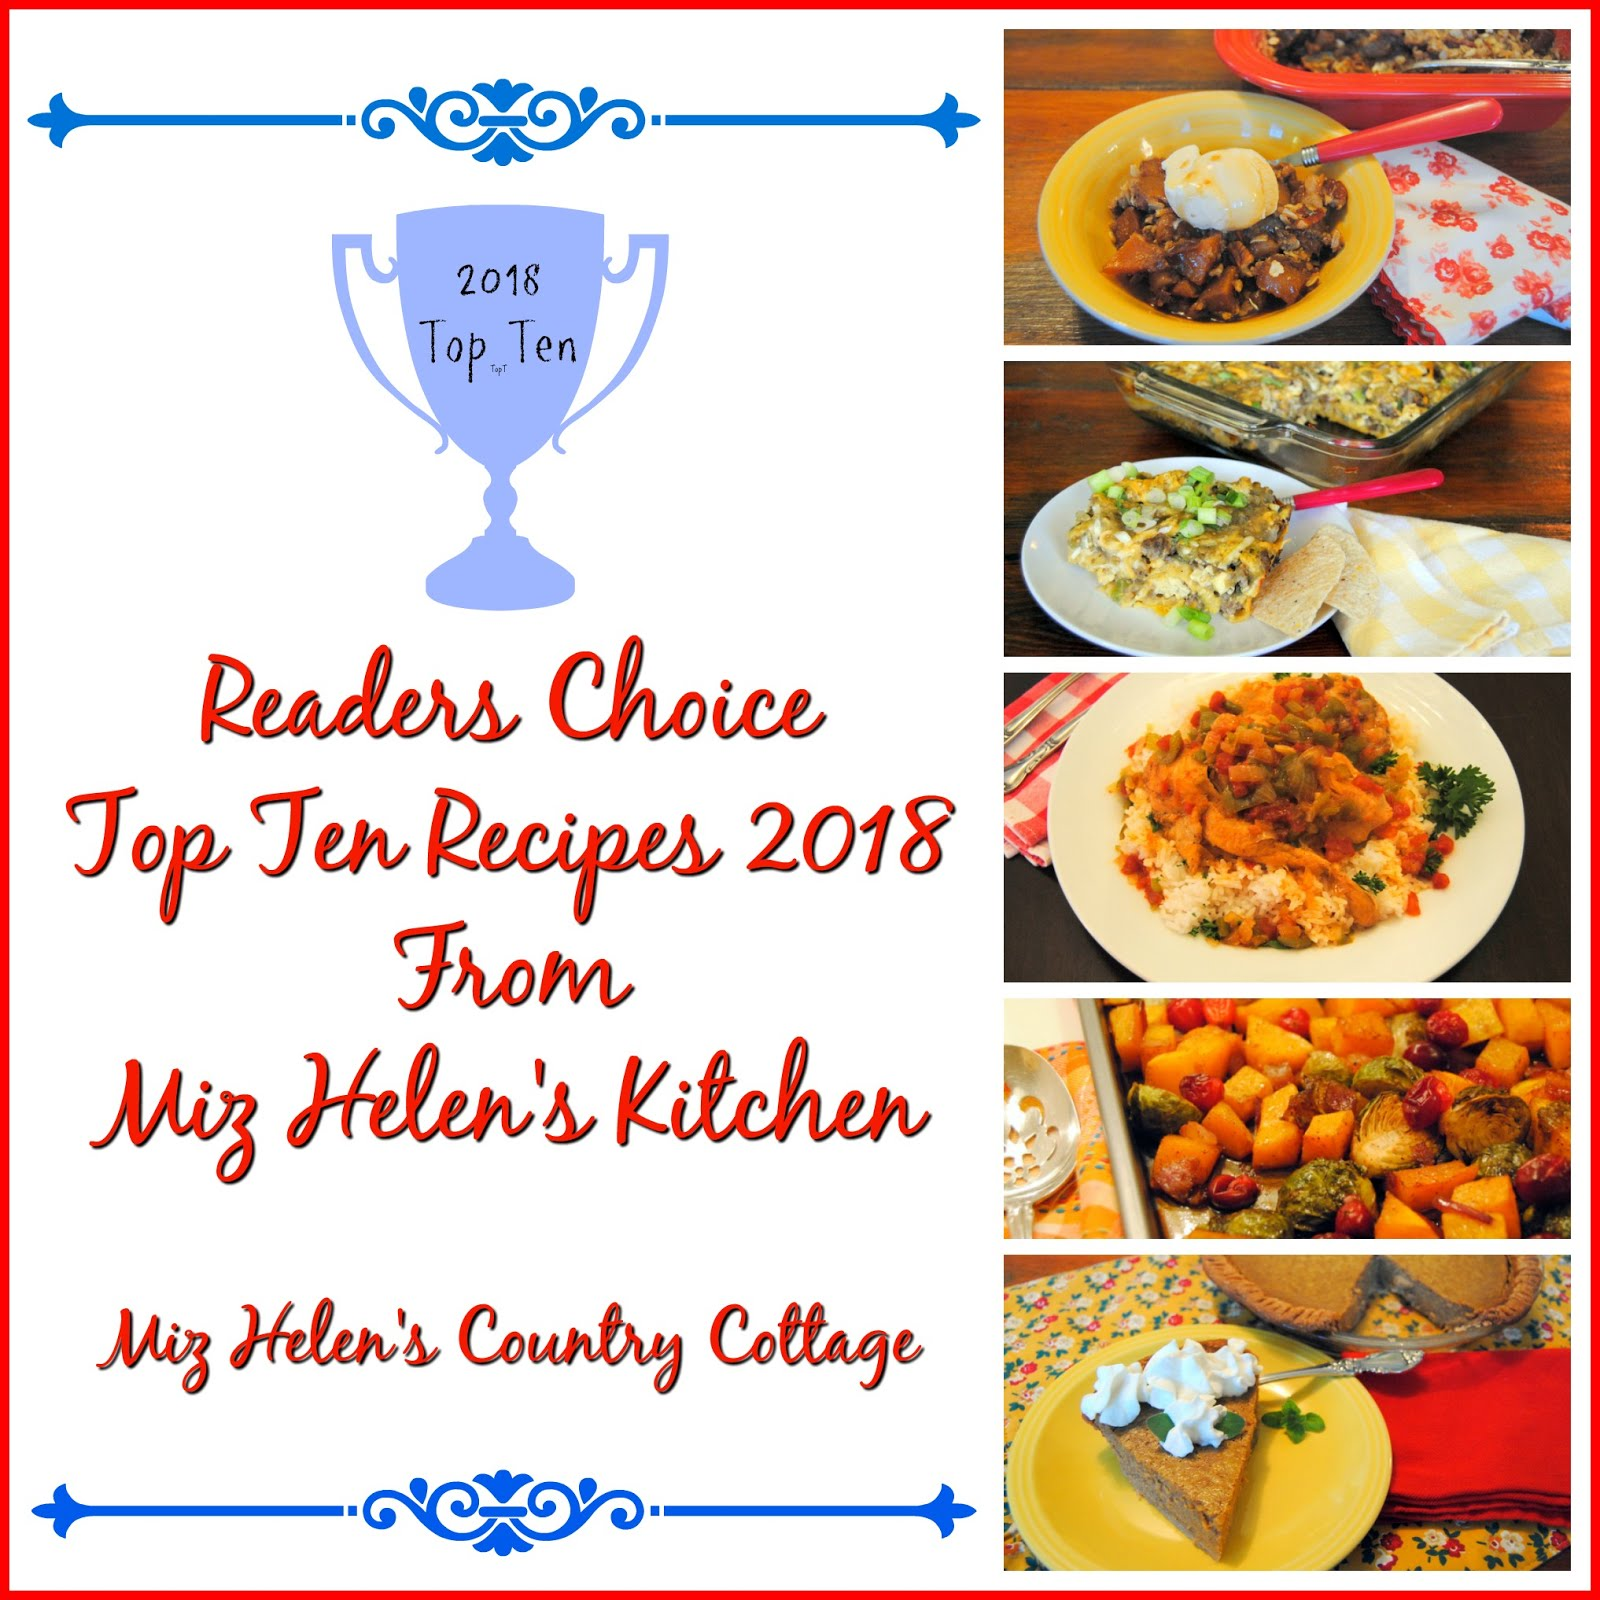 Top Ten Recipes Readers Choice 2018